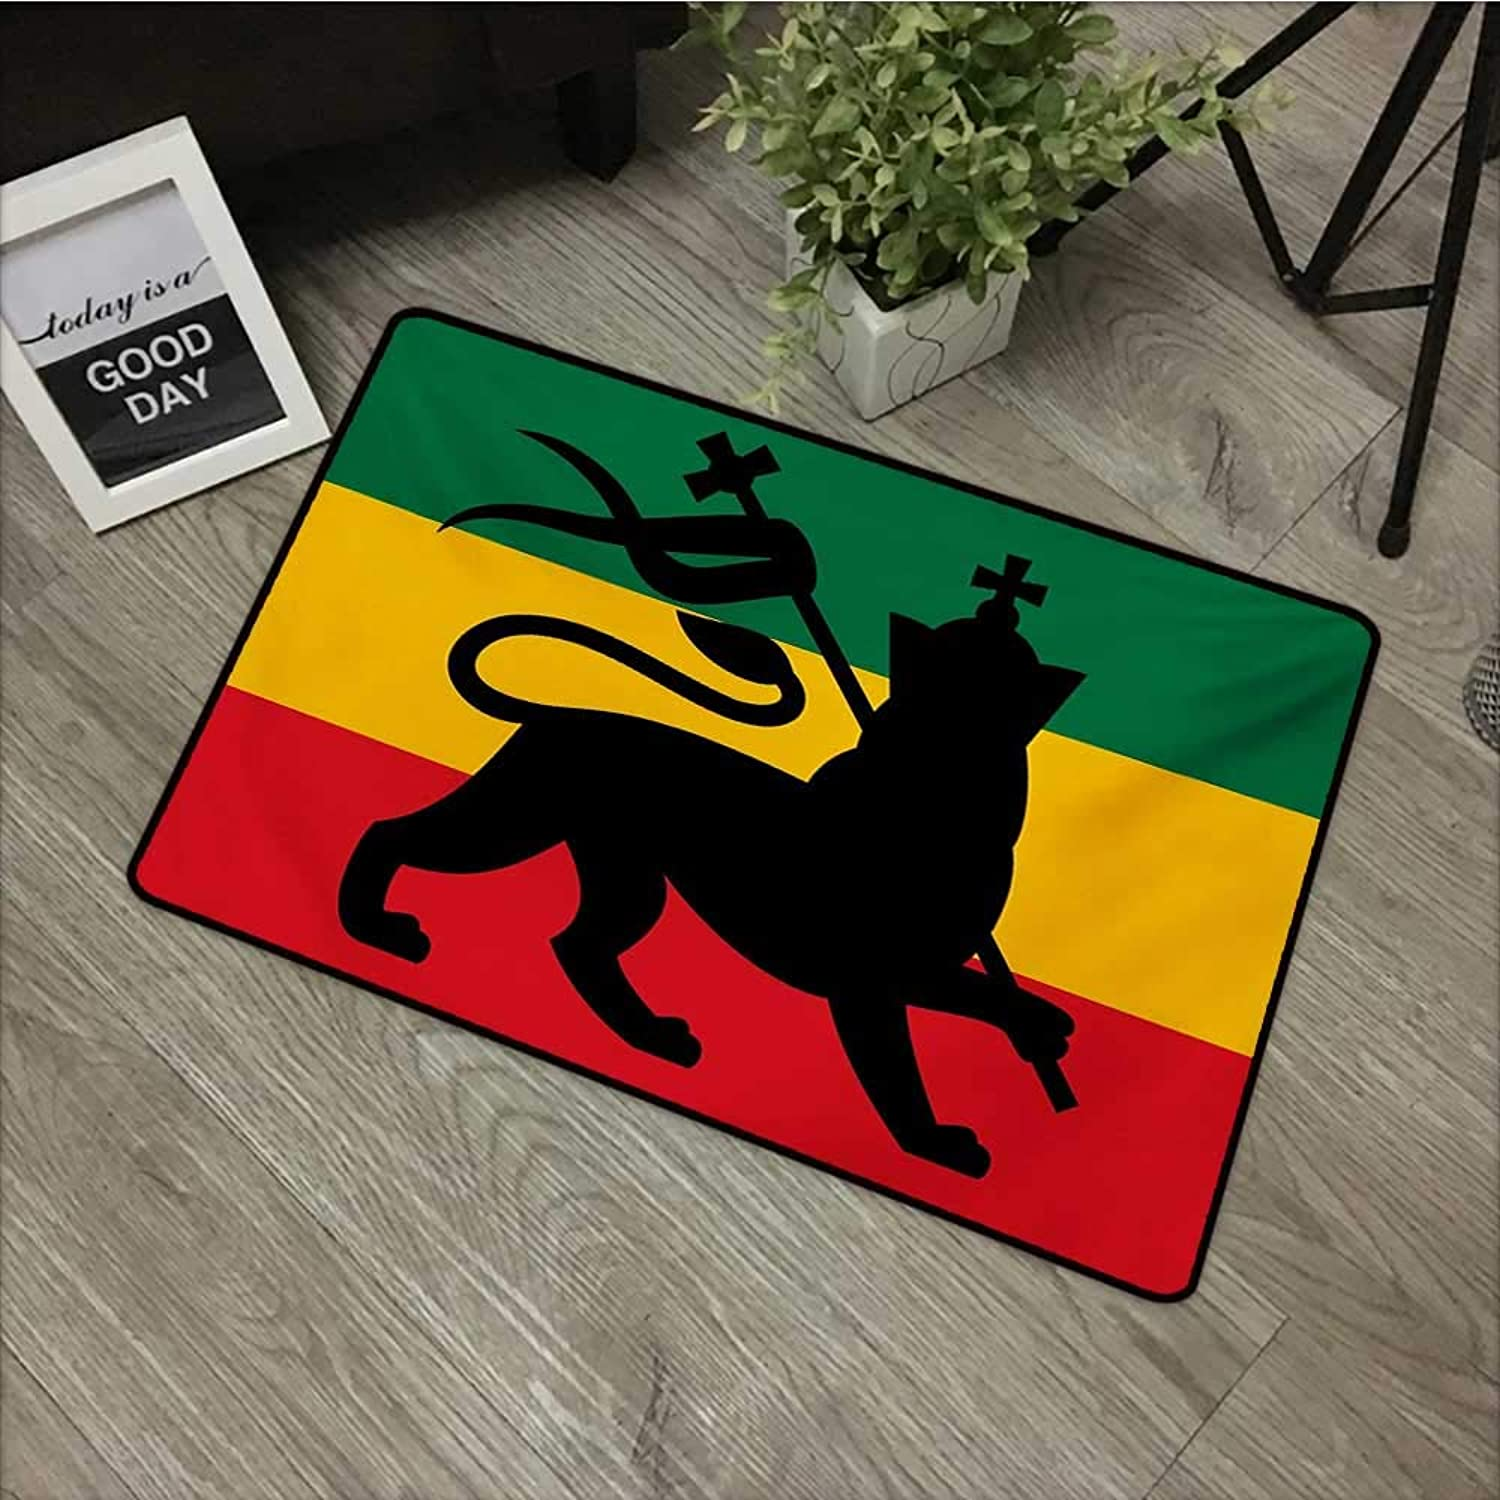 Clear printed pattern door mat W35 x L59 INCH Rasta,Rastafarian Flag with Judah Lion Reggae Music Inspired Design Image,Black Red Green and Yellow Easy to clean, no deformation, no fading Non-slip Doo